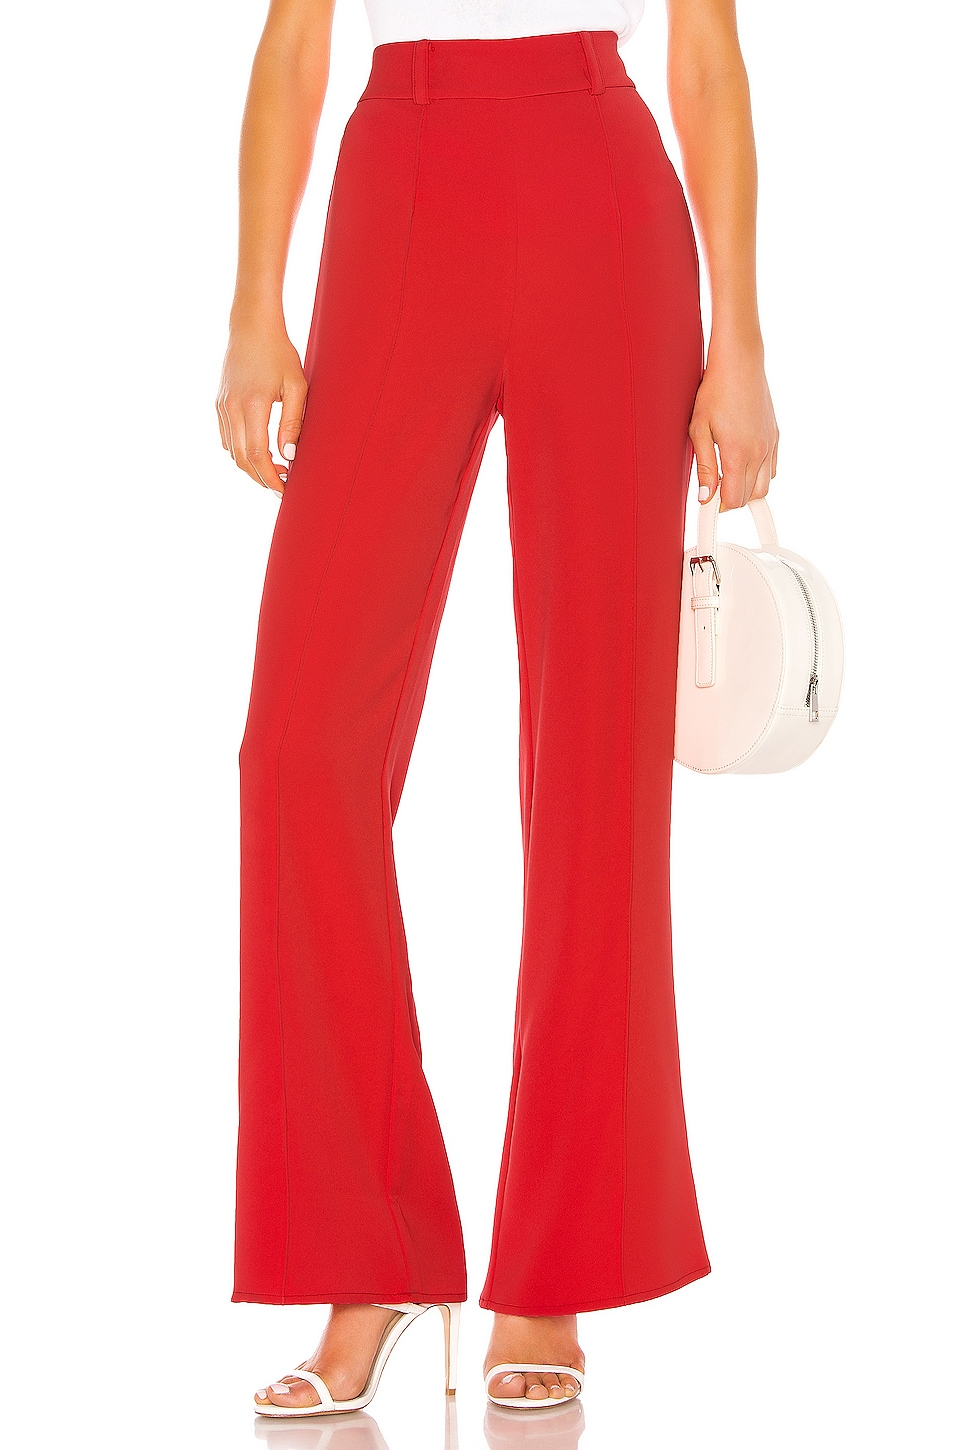 Lovers + Friends Lowell Pant in Coral Red